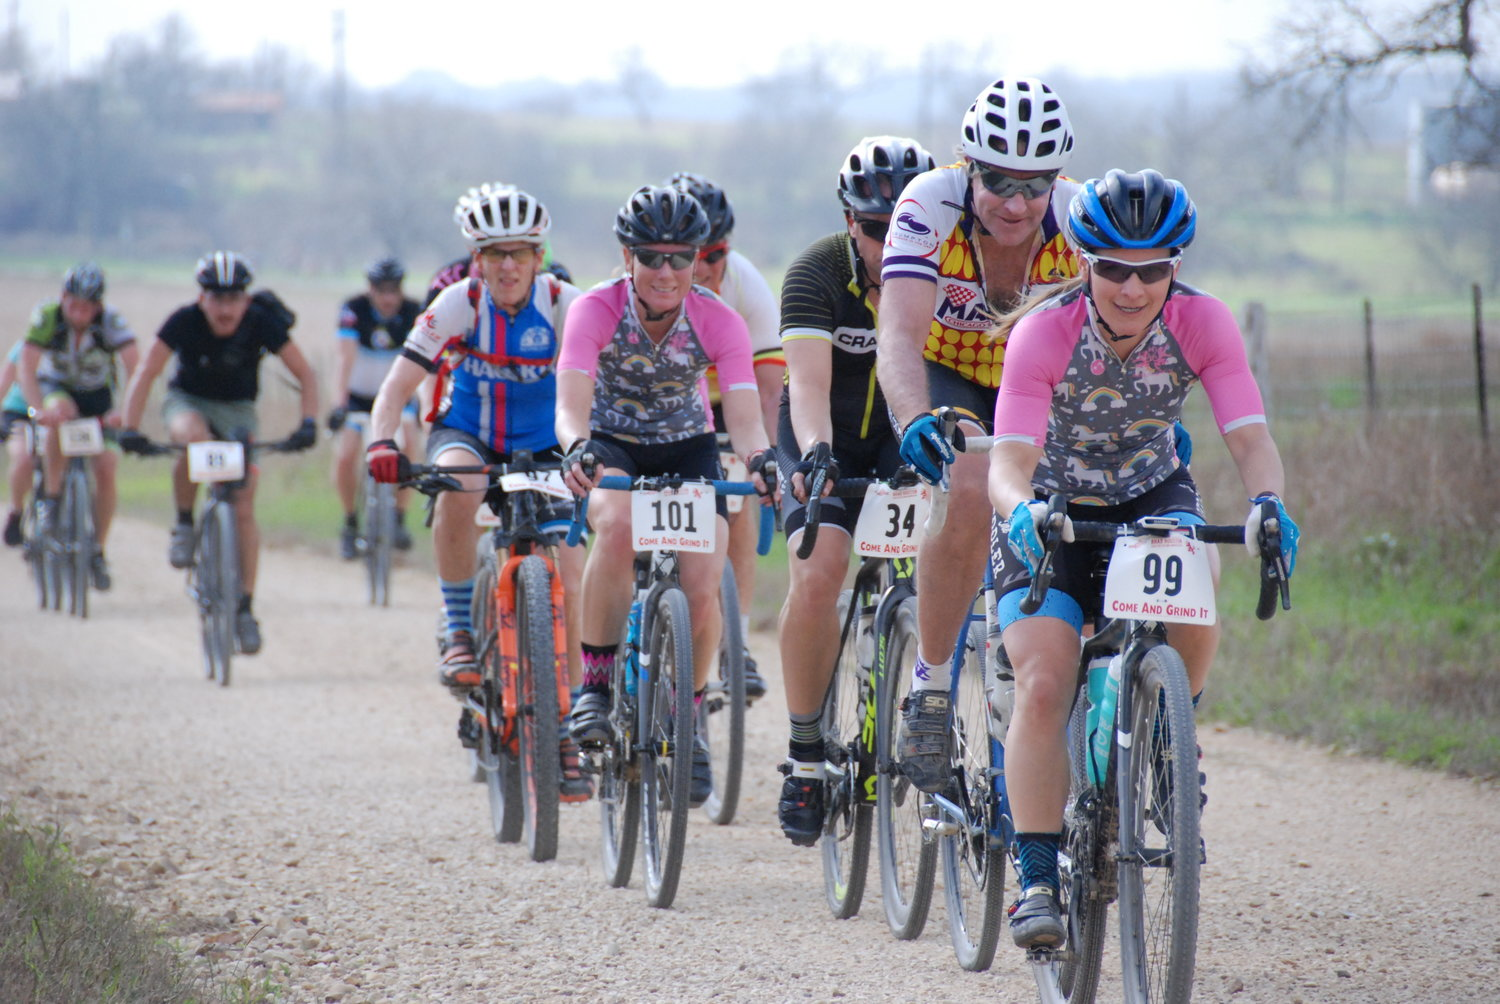 Come and Grind It is back for a fourth time in Leesville this Saturday. Participation in the gravel road cycling event has grown since its inception in 2017.